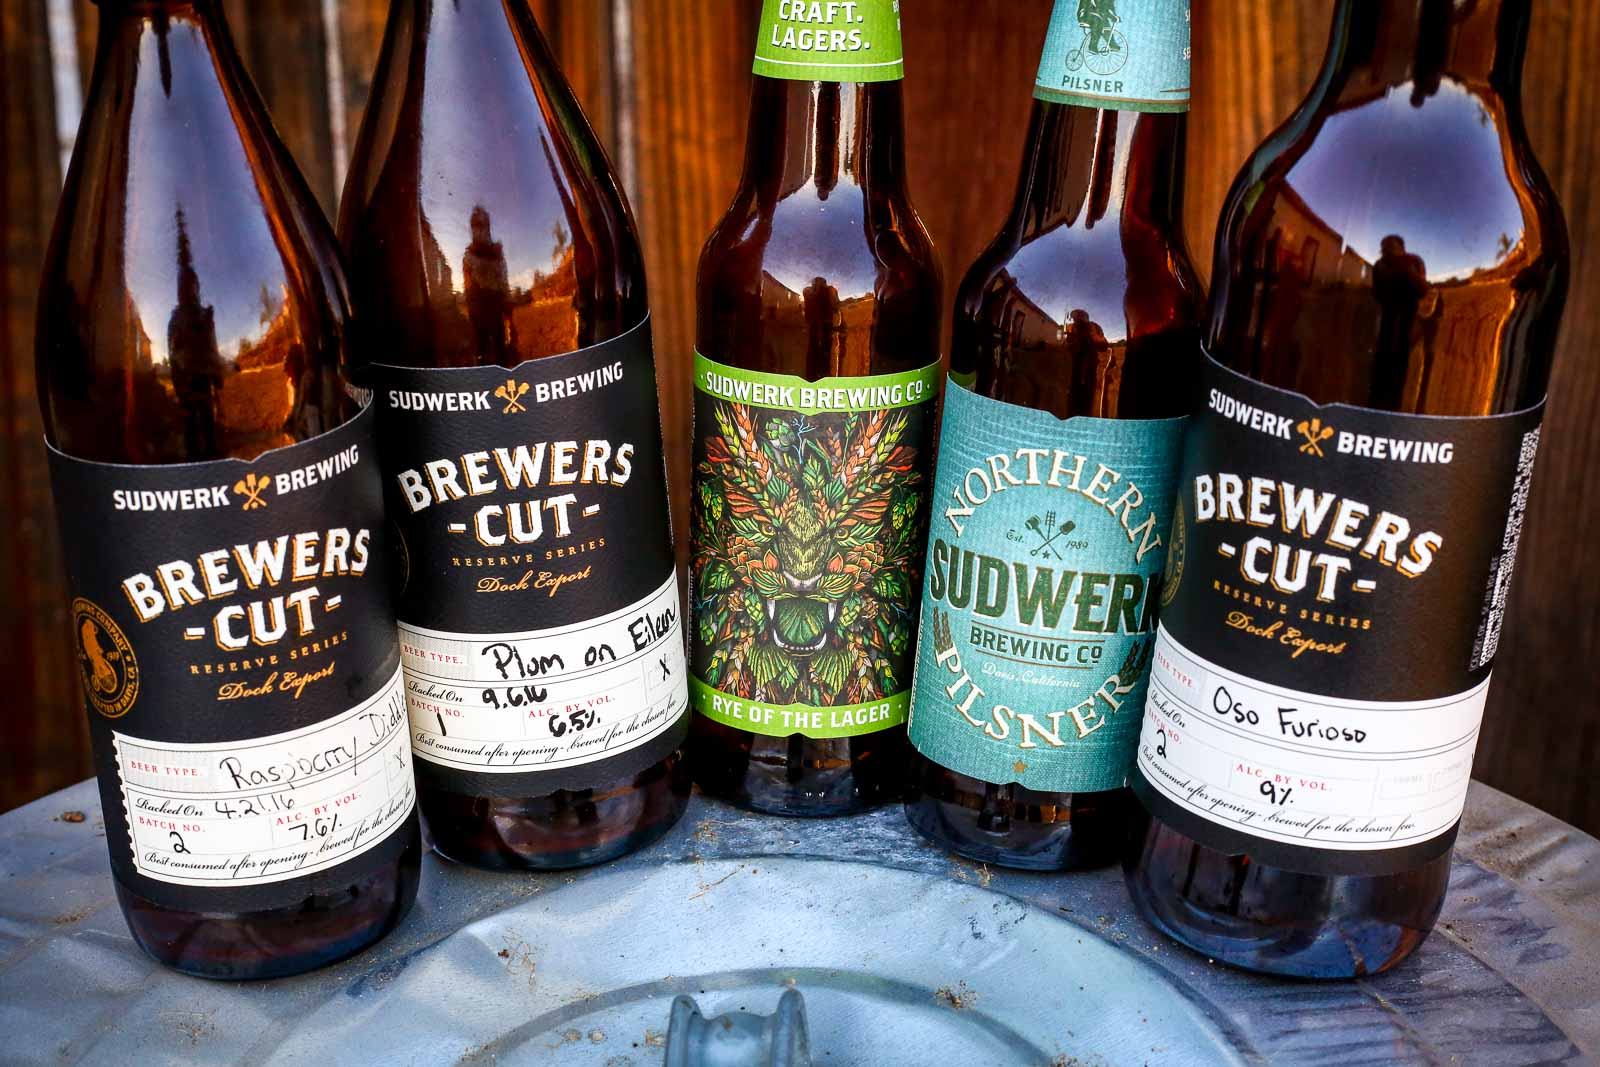 Sudwerk Brewing Co. Beers